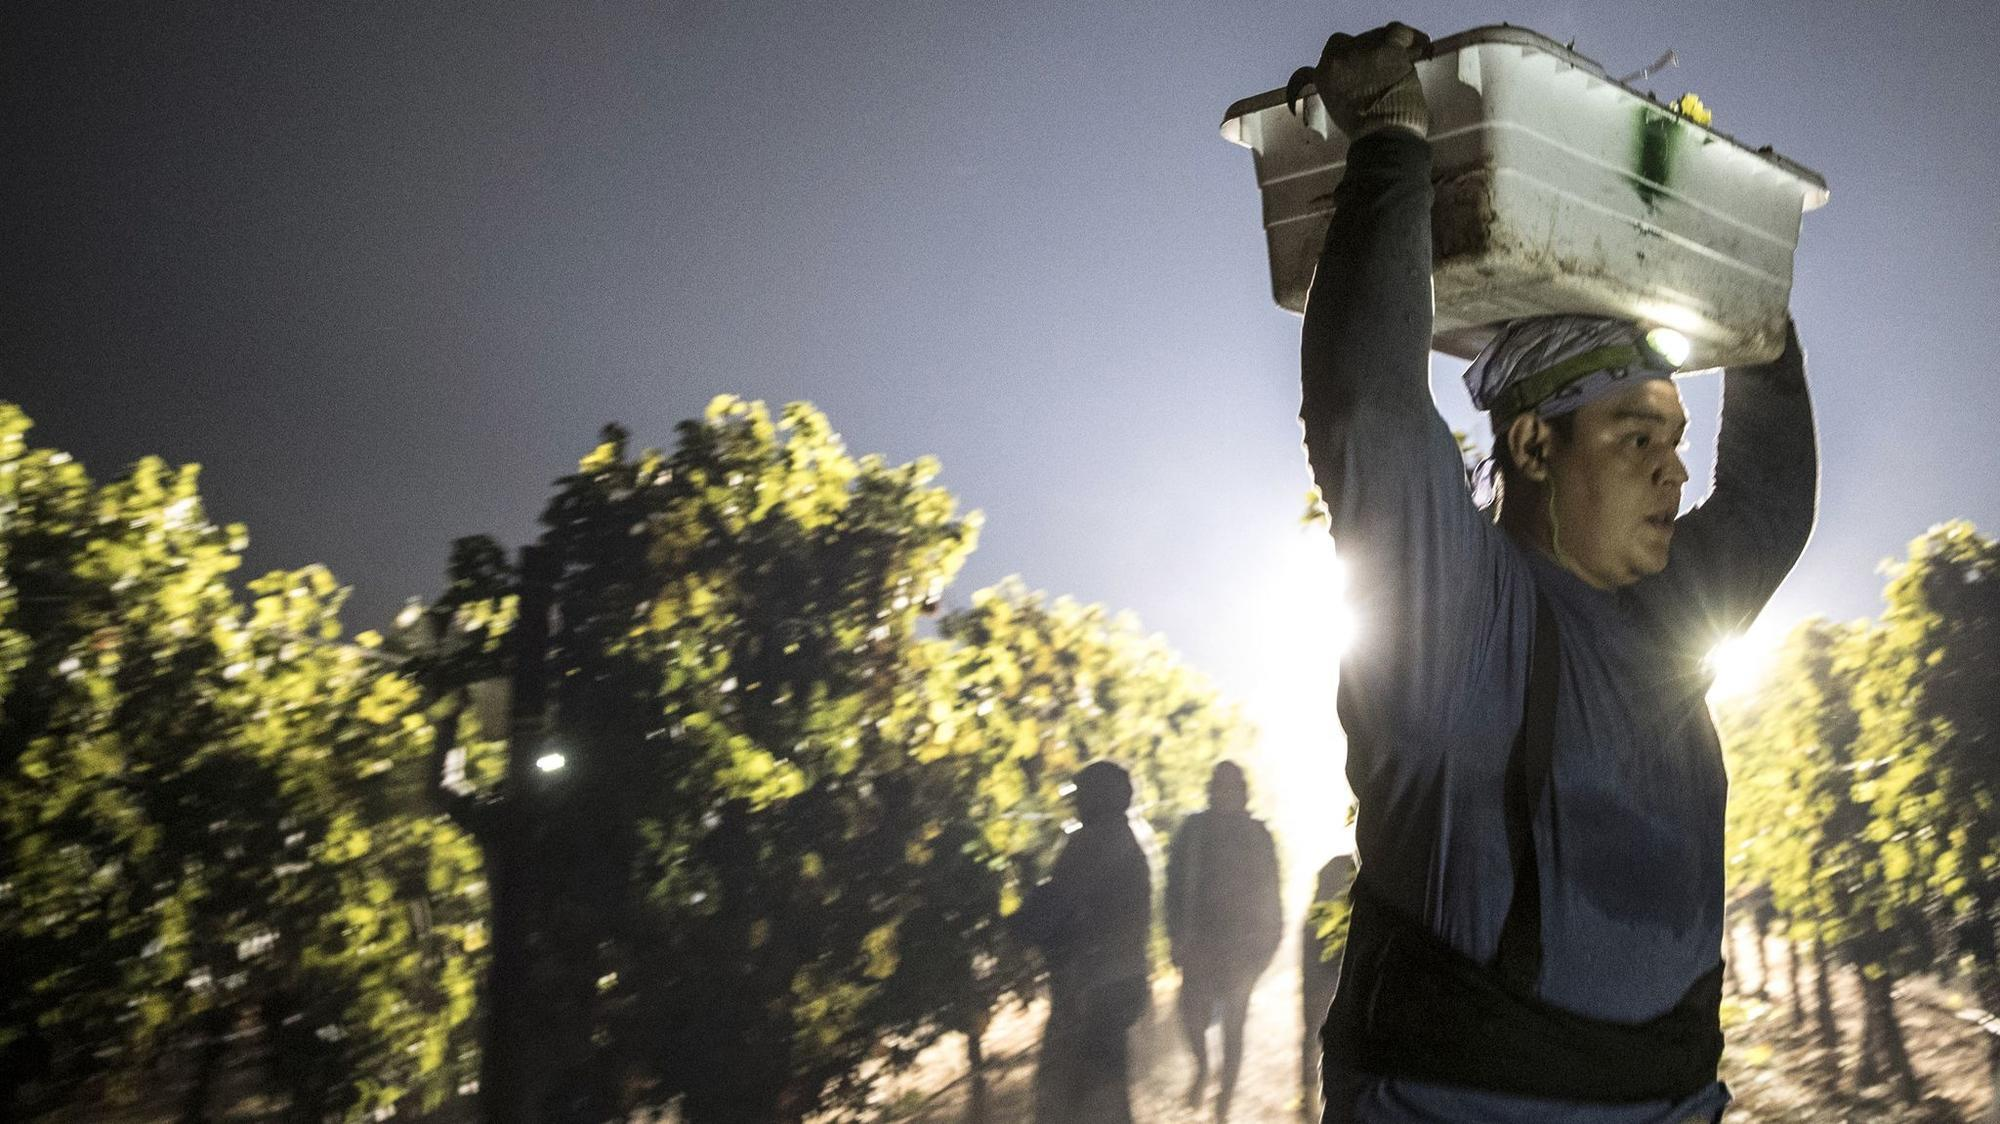 At Napa vineyards untouched by wildfires, the grapes must still be picked